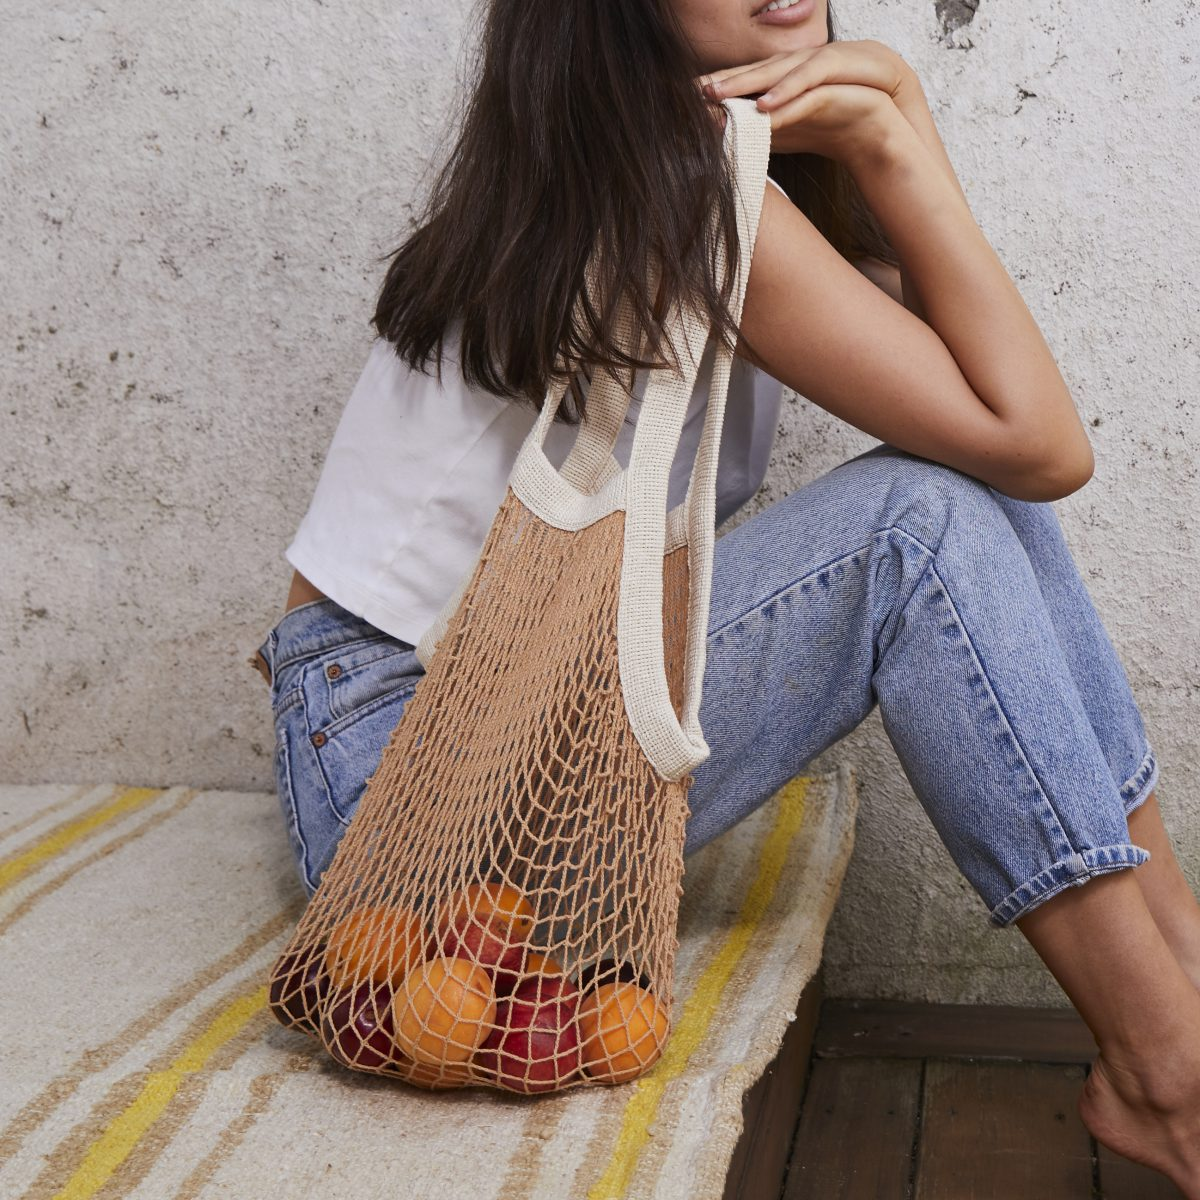 woman sitting outside holding a nude colored net bag filled with fruit